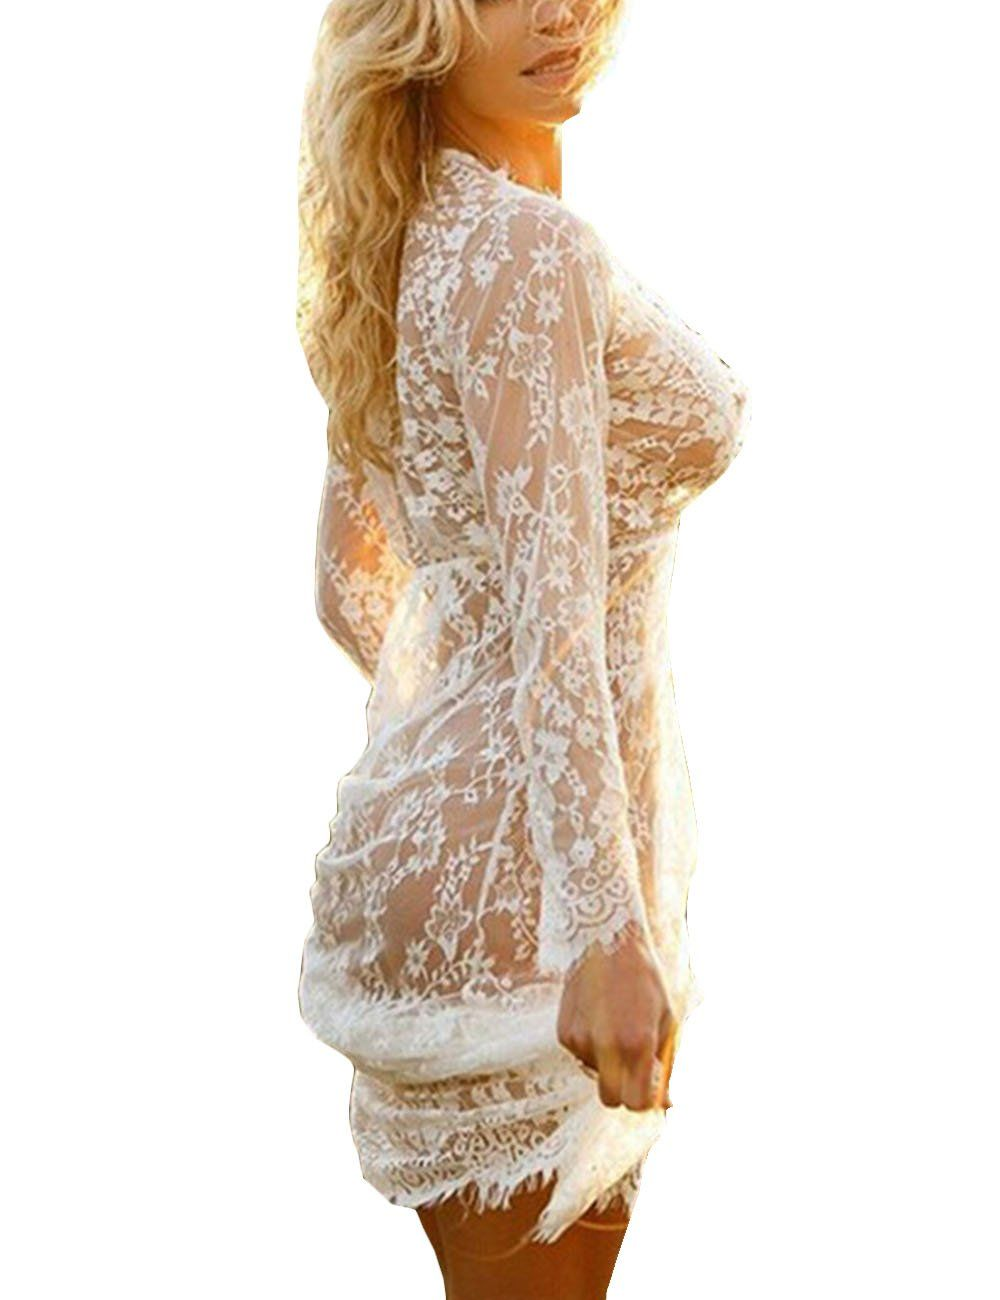 Lace v neck maxi dress  Gogoboi Sexy Women Deep V Neck Long Sleeve Lace Mesh Beach Cover Up